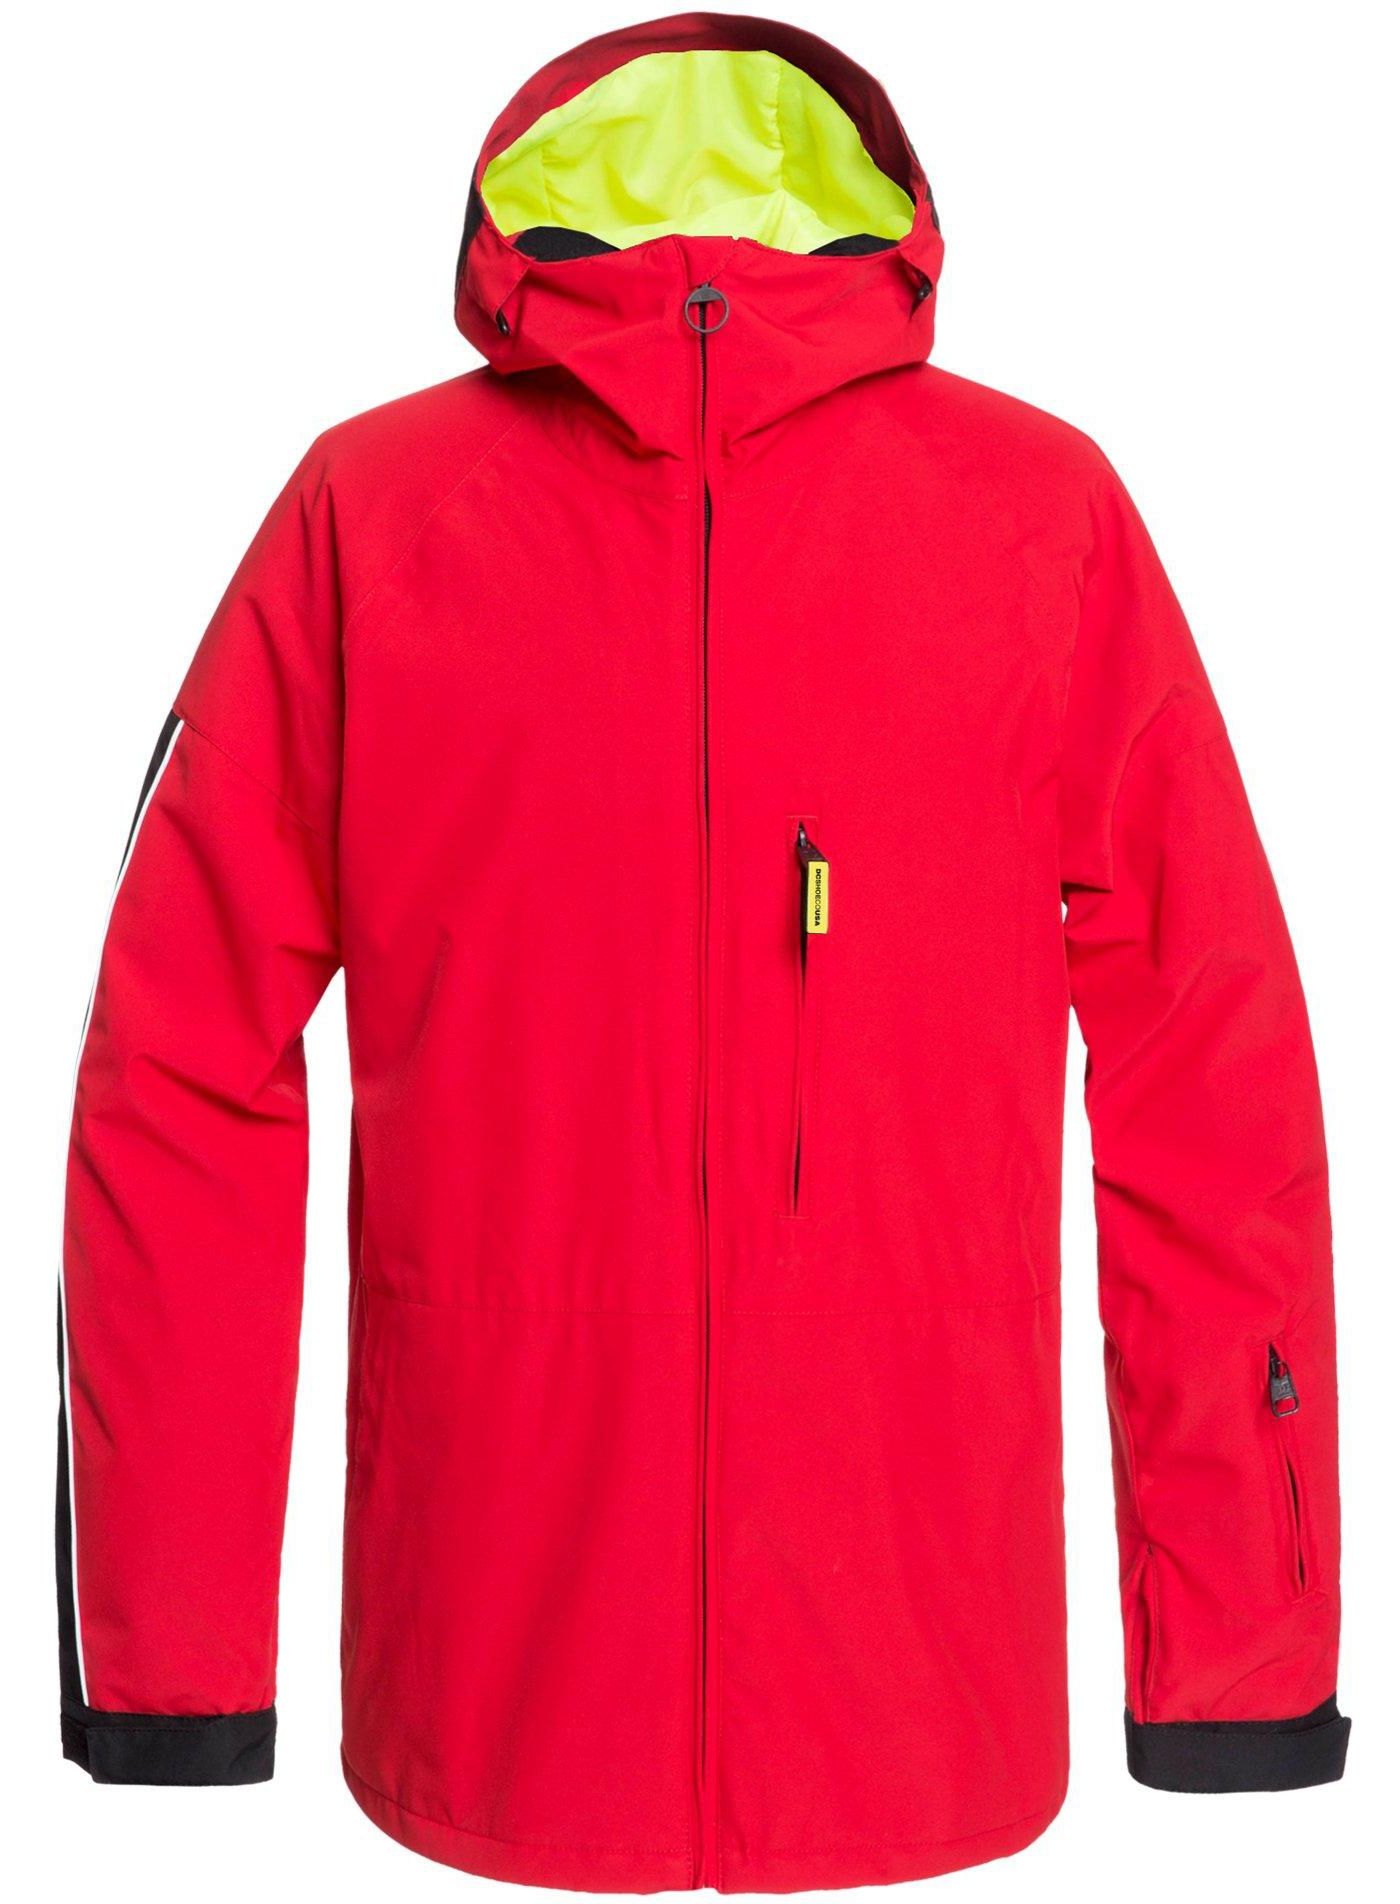 DC Shoes Men's Retrospect Snow Jacket